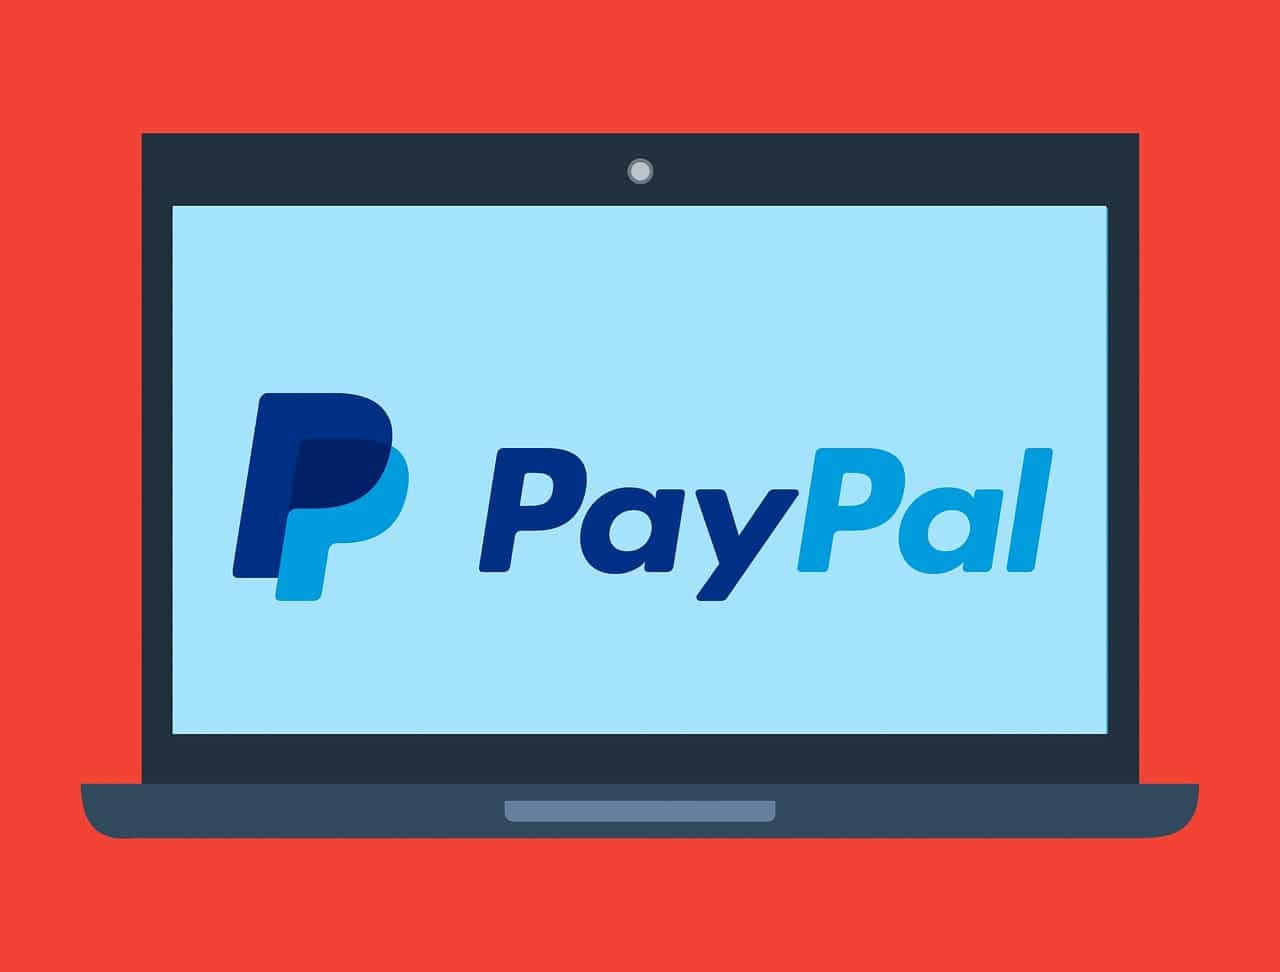 Top 20 PayPal Competitors & Alternatives   Business Strategy Hub